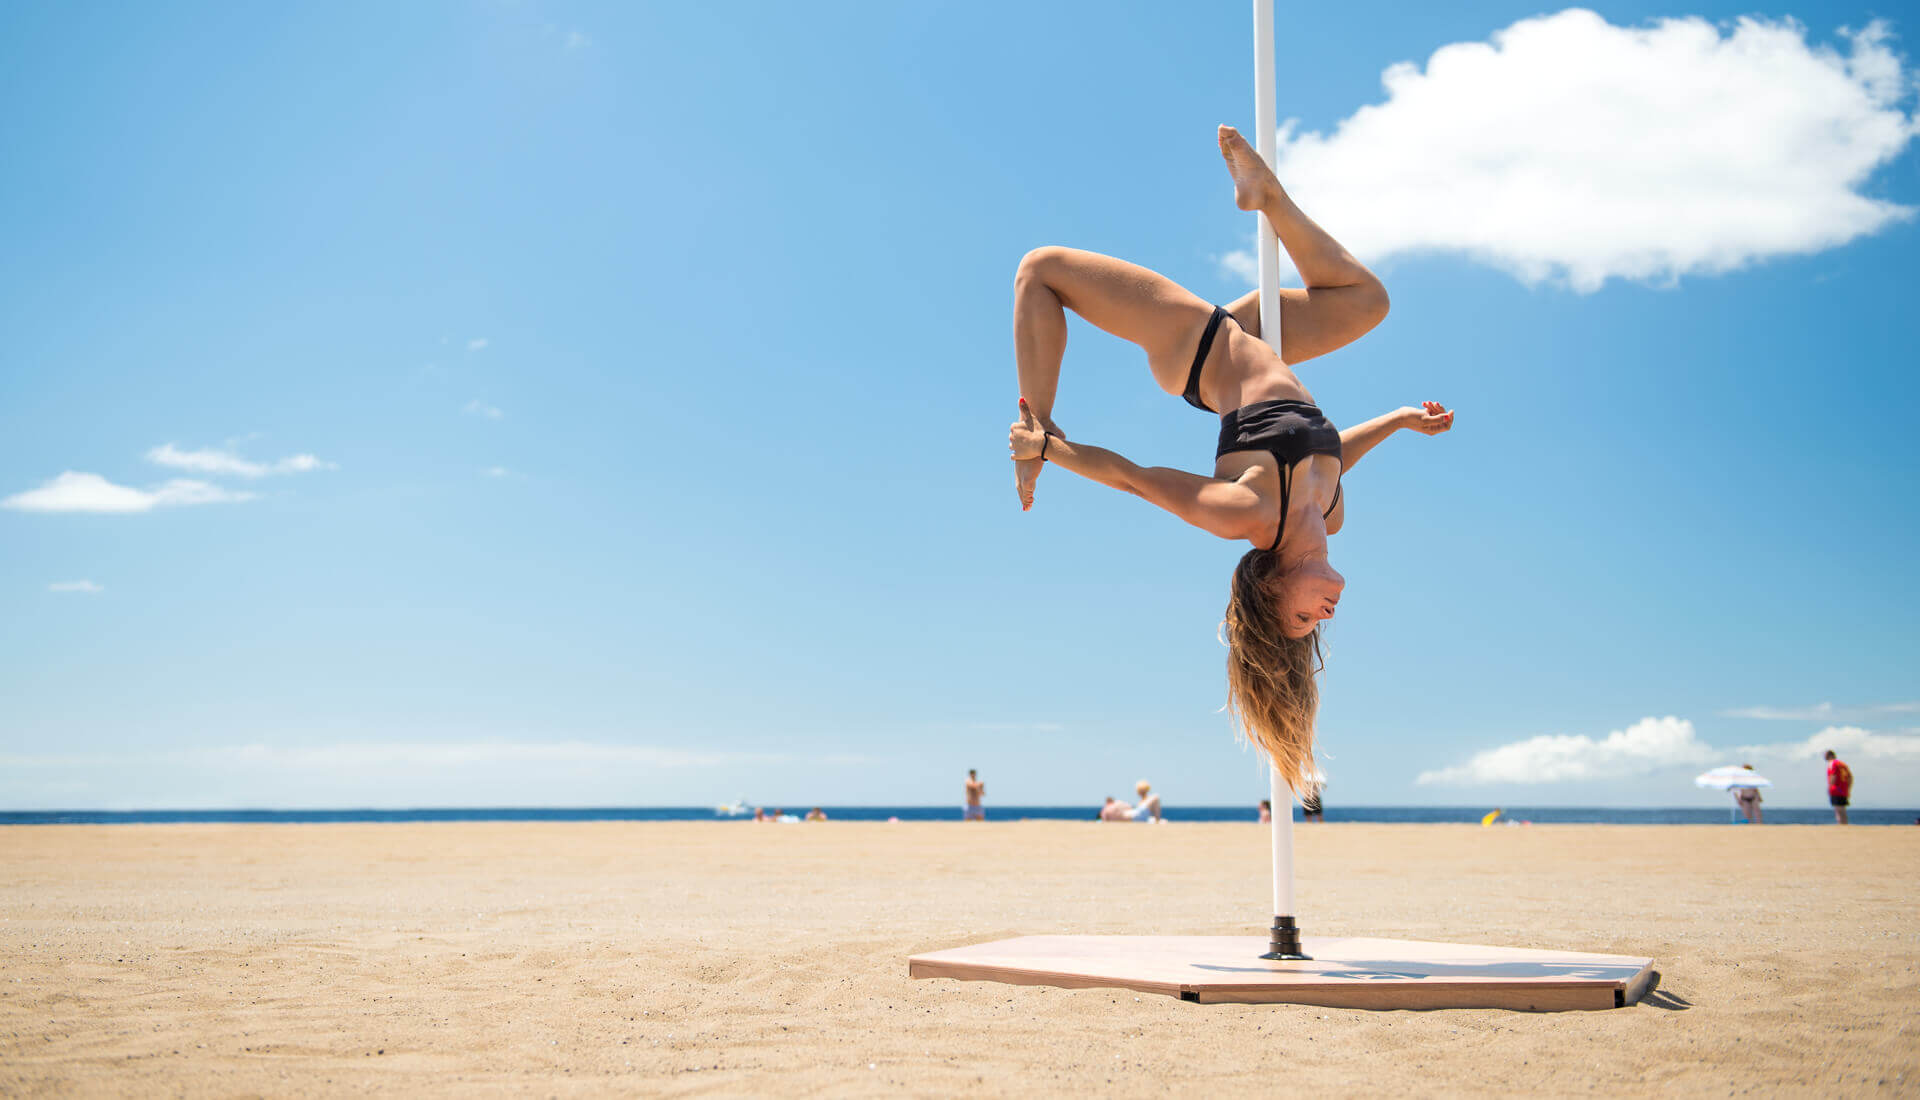 Pedana pole dance professionale